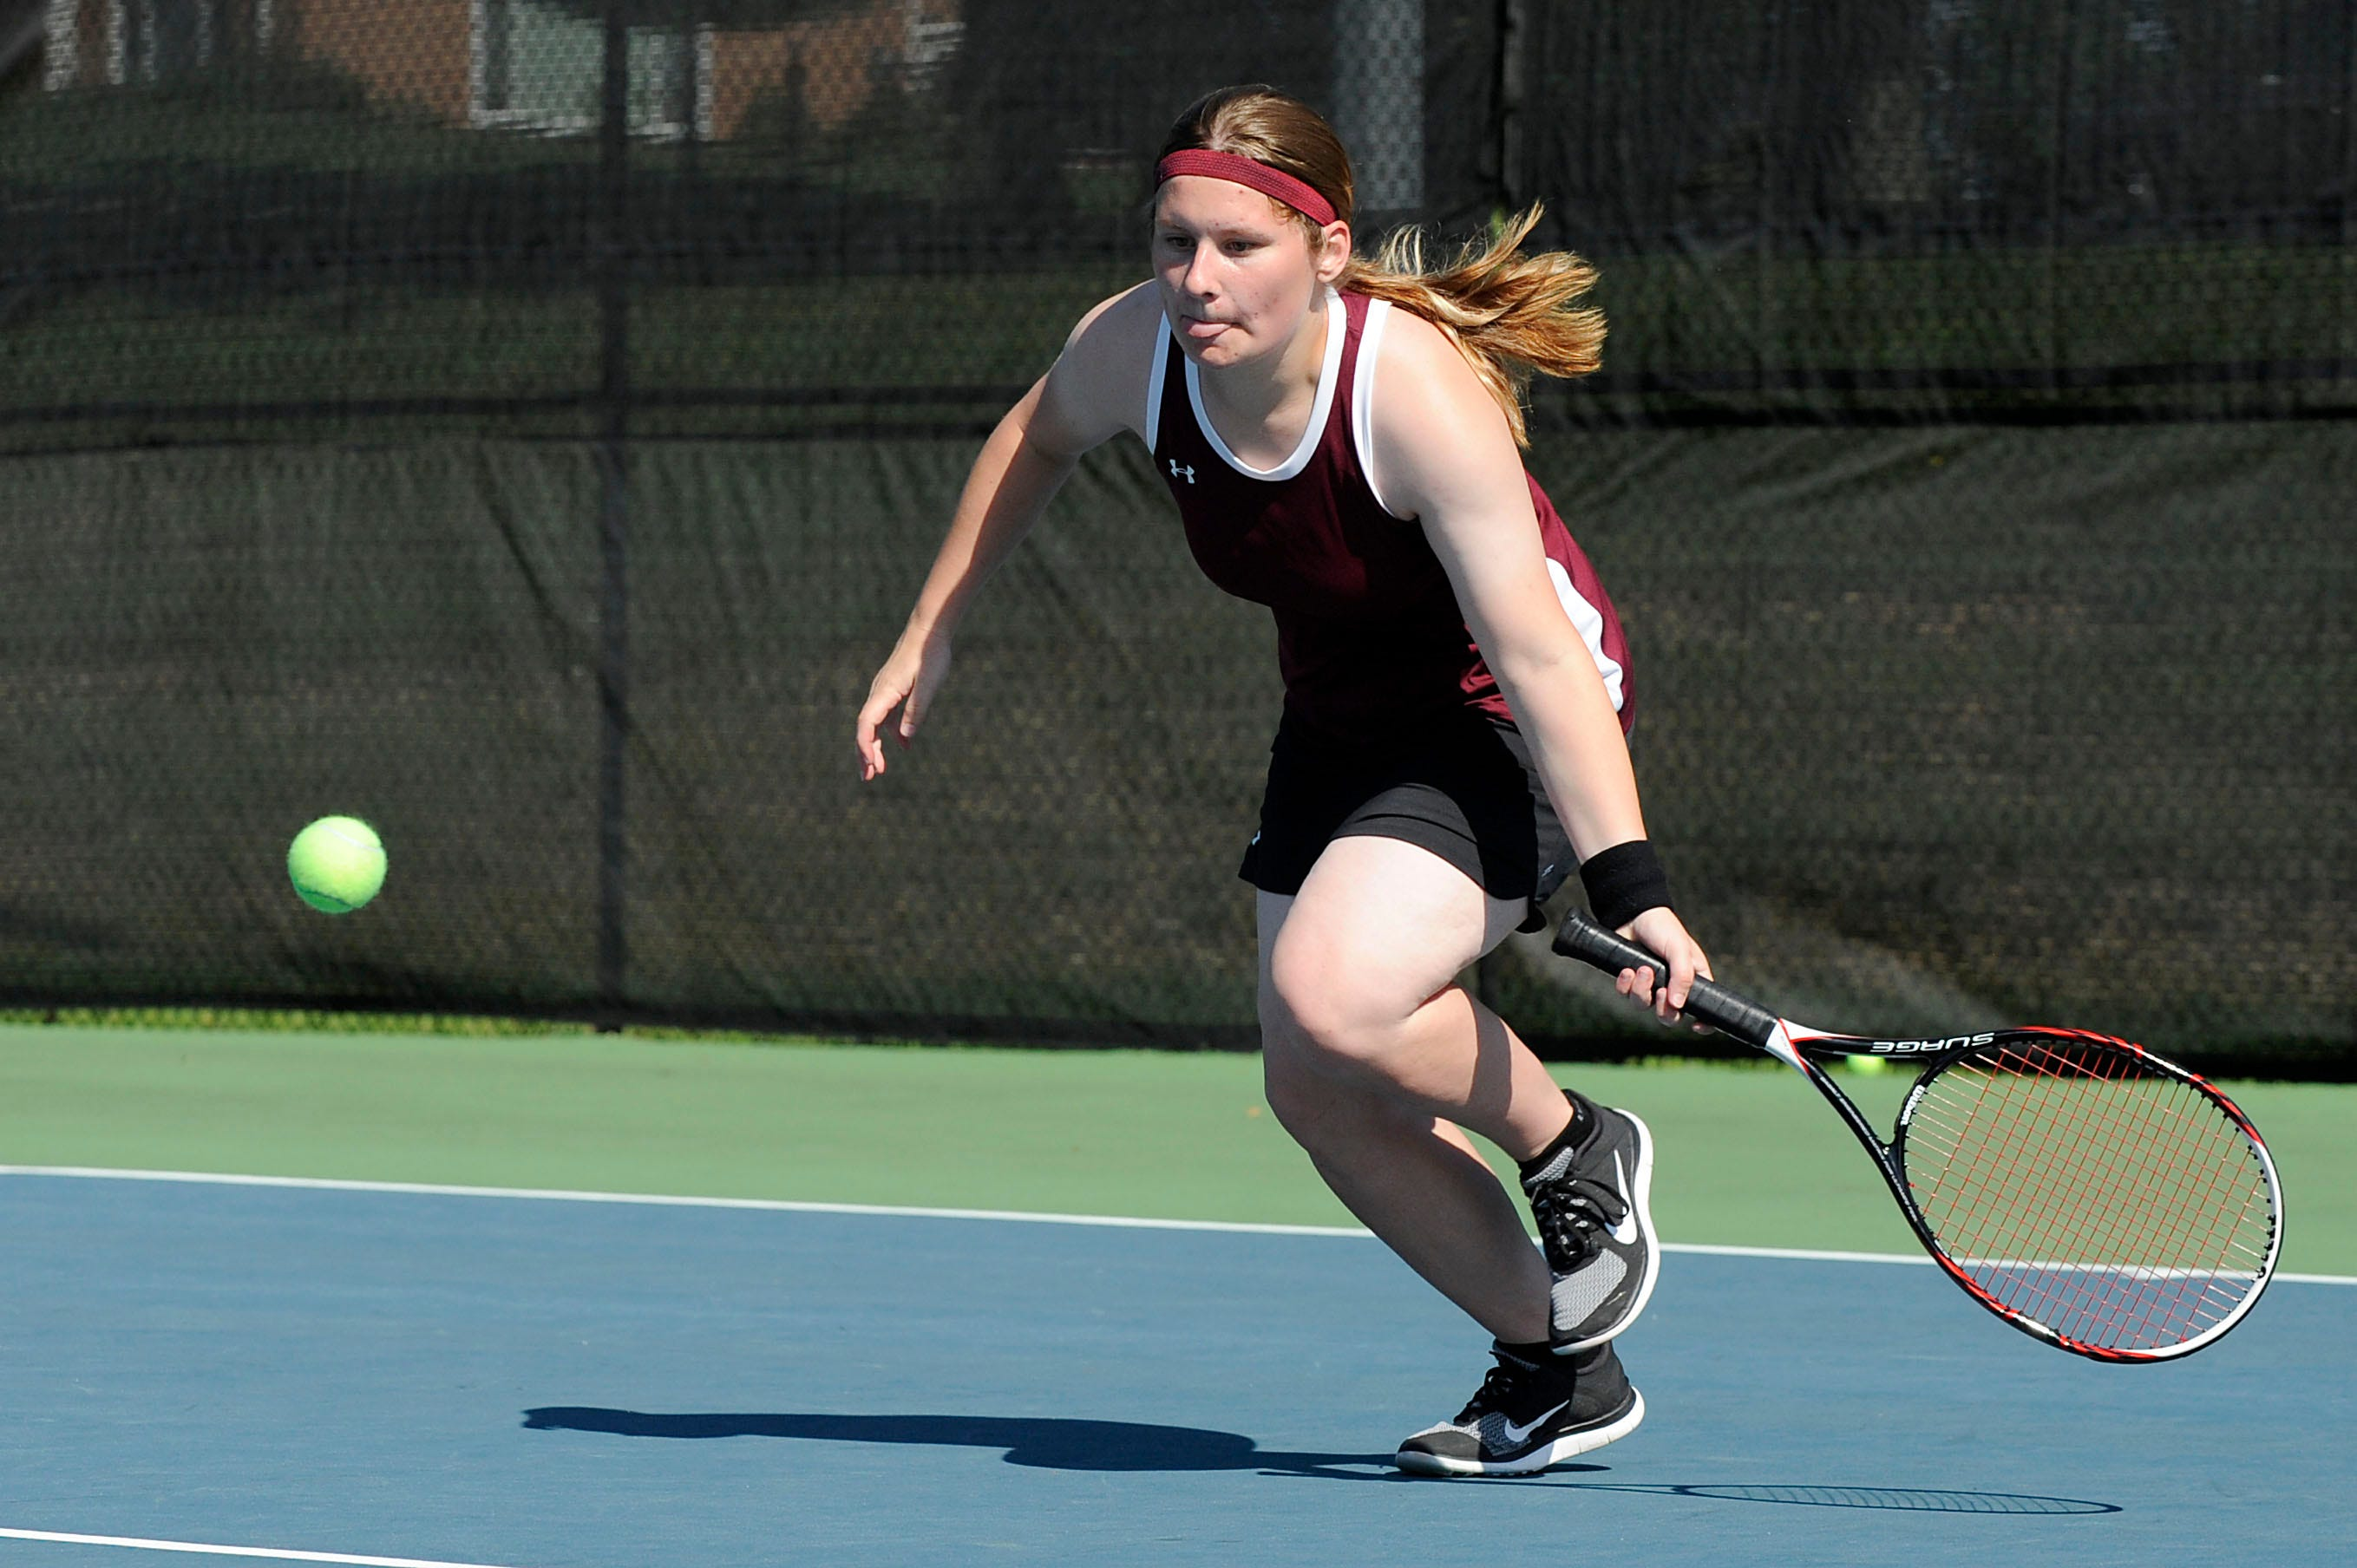 Newark's Nicole Gilliam returns the ball during a No. 1 doubles match against Watkins Memorial during Saturday's Licking County girls tennis tournament at Denison. Gilliam teamed with Katie Huang.